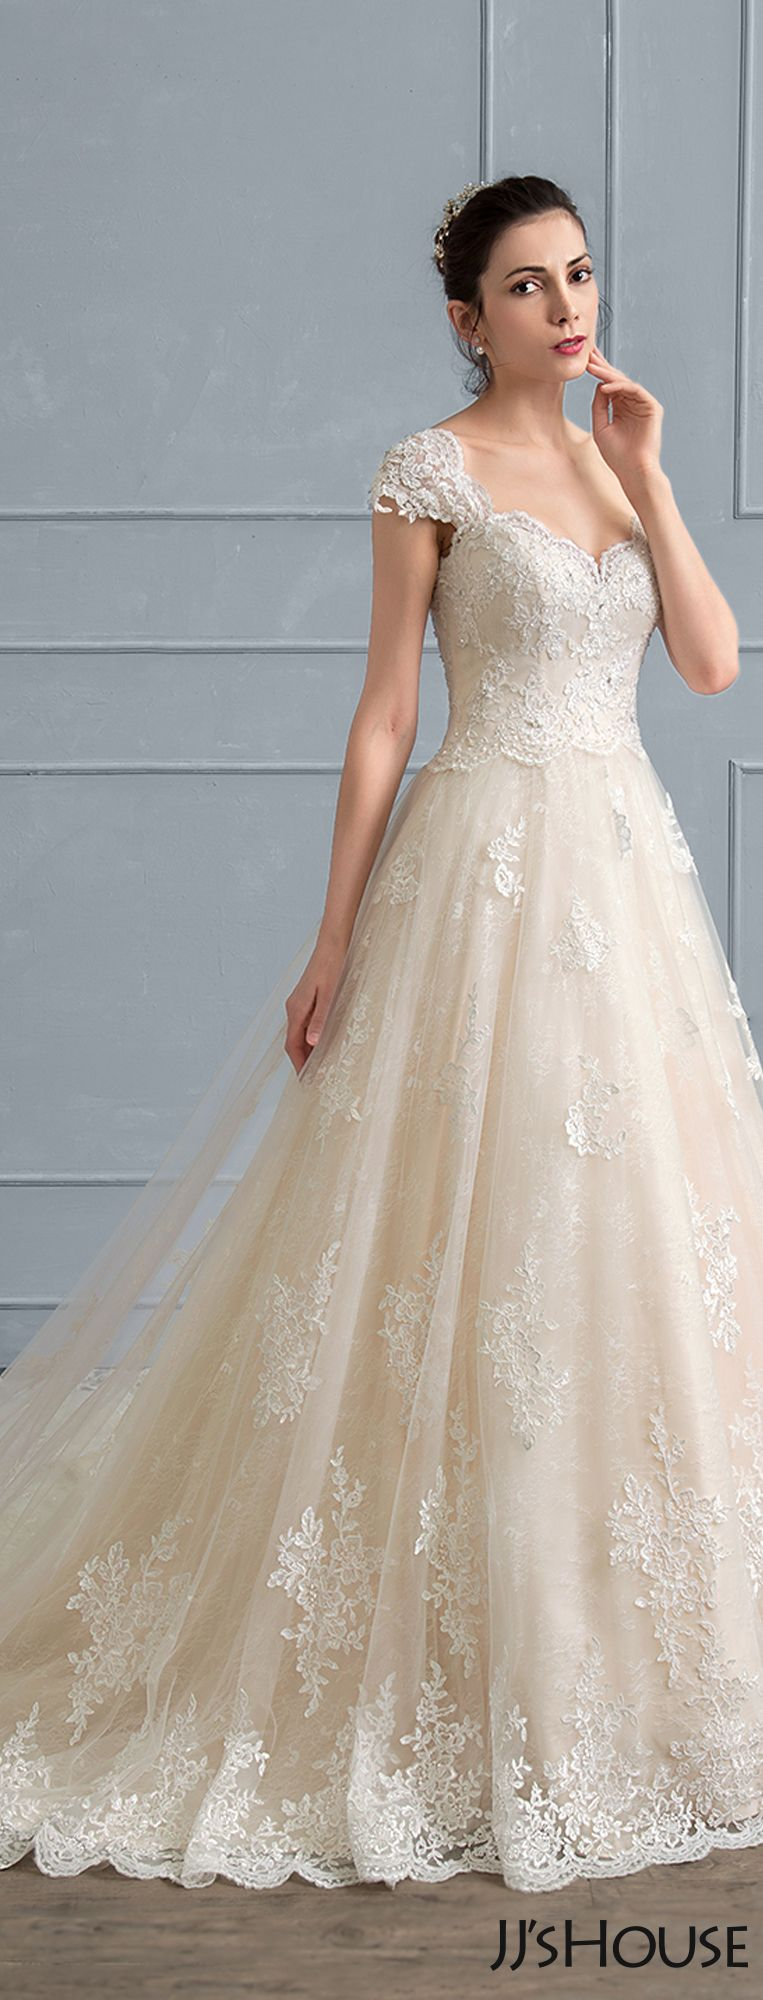 JJsHouse #Wedding | JJsHouse Wedding Dresses | Pinterest | Weddings ...